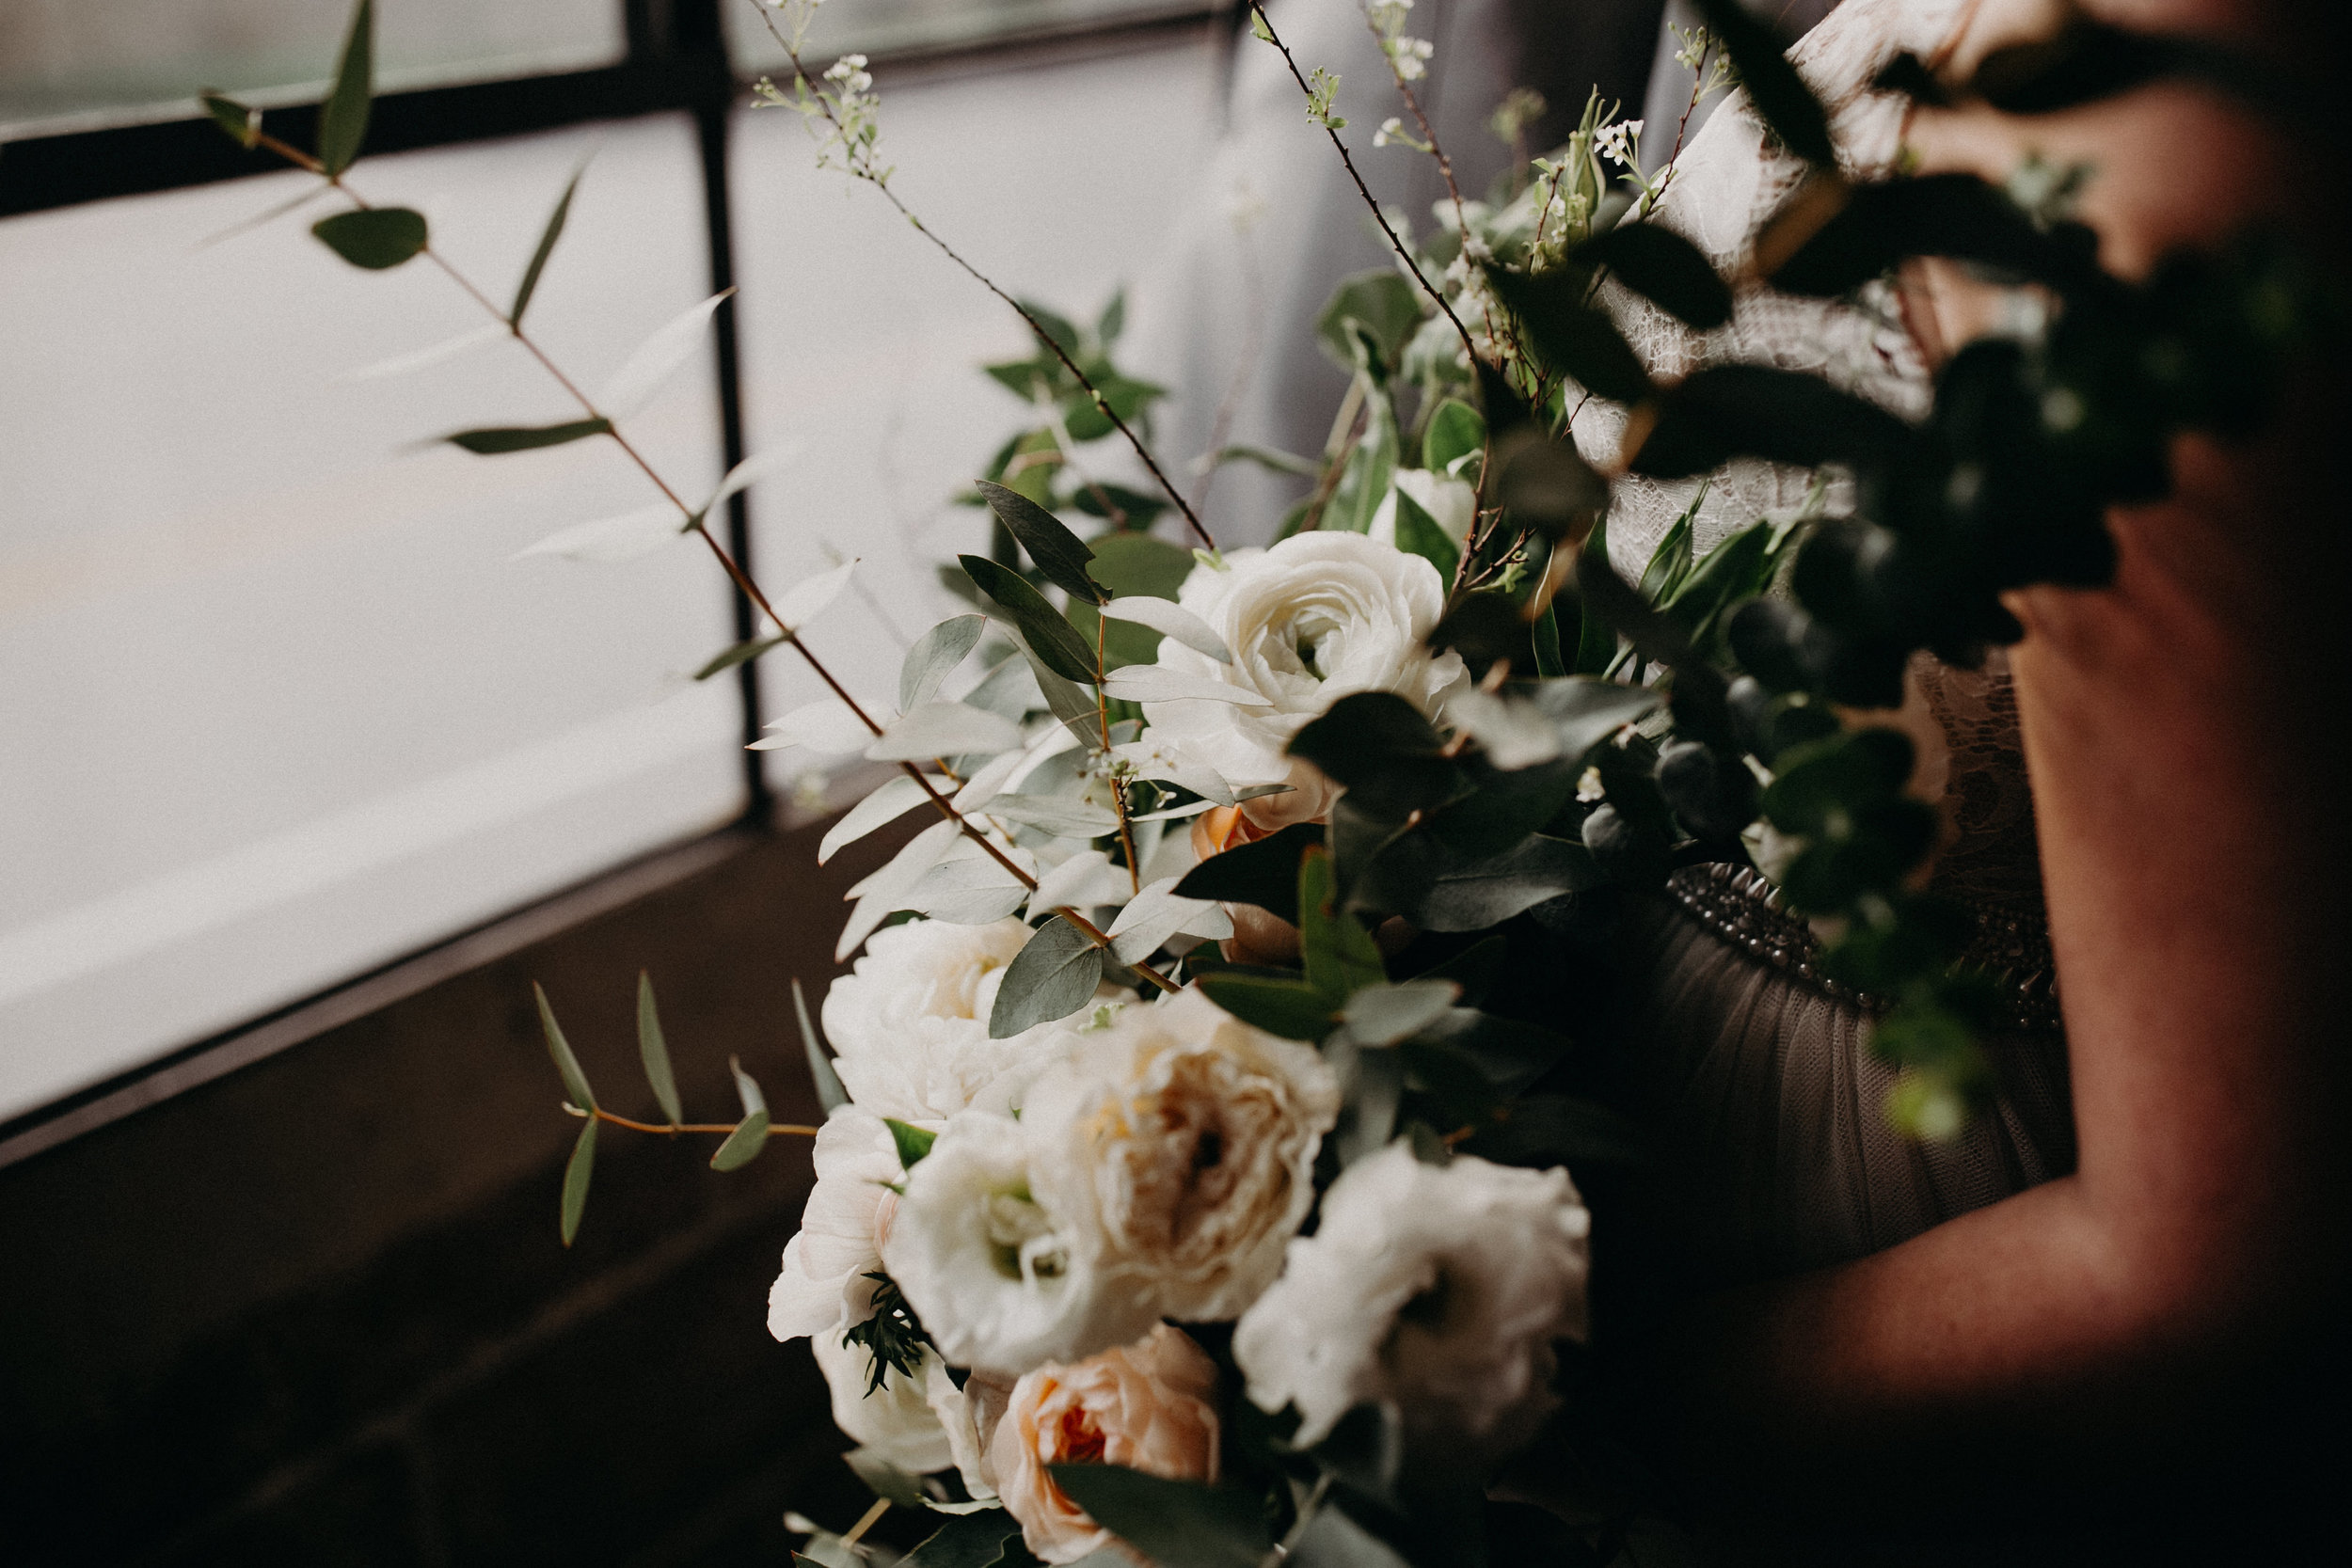 Smoky Hollow Studios Wedding Anne & Lewis Emily Magers Photography-383.jpg